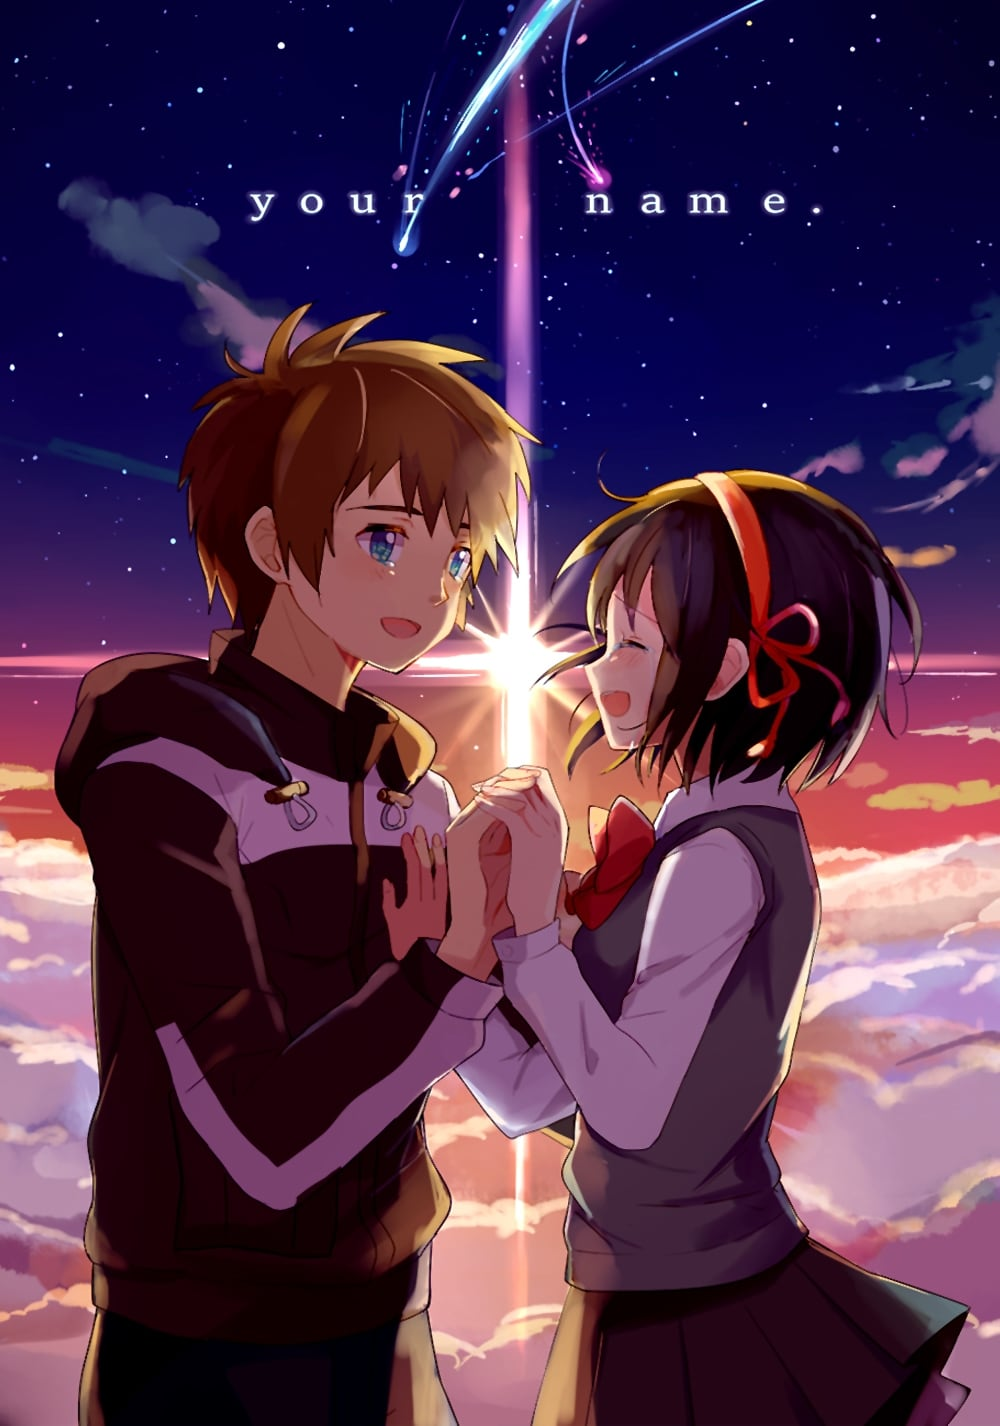 Your Name Stream